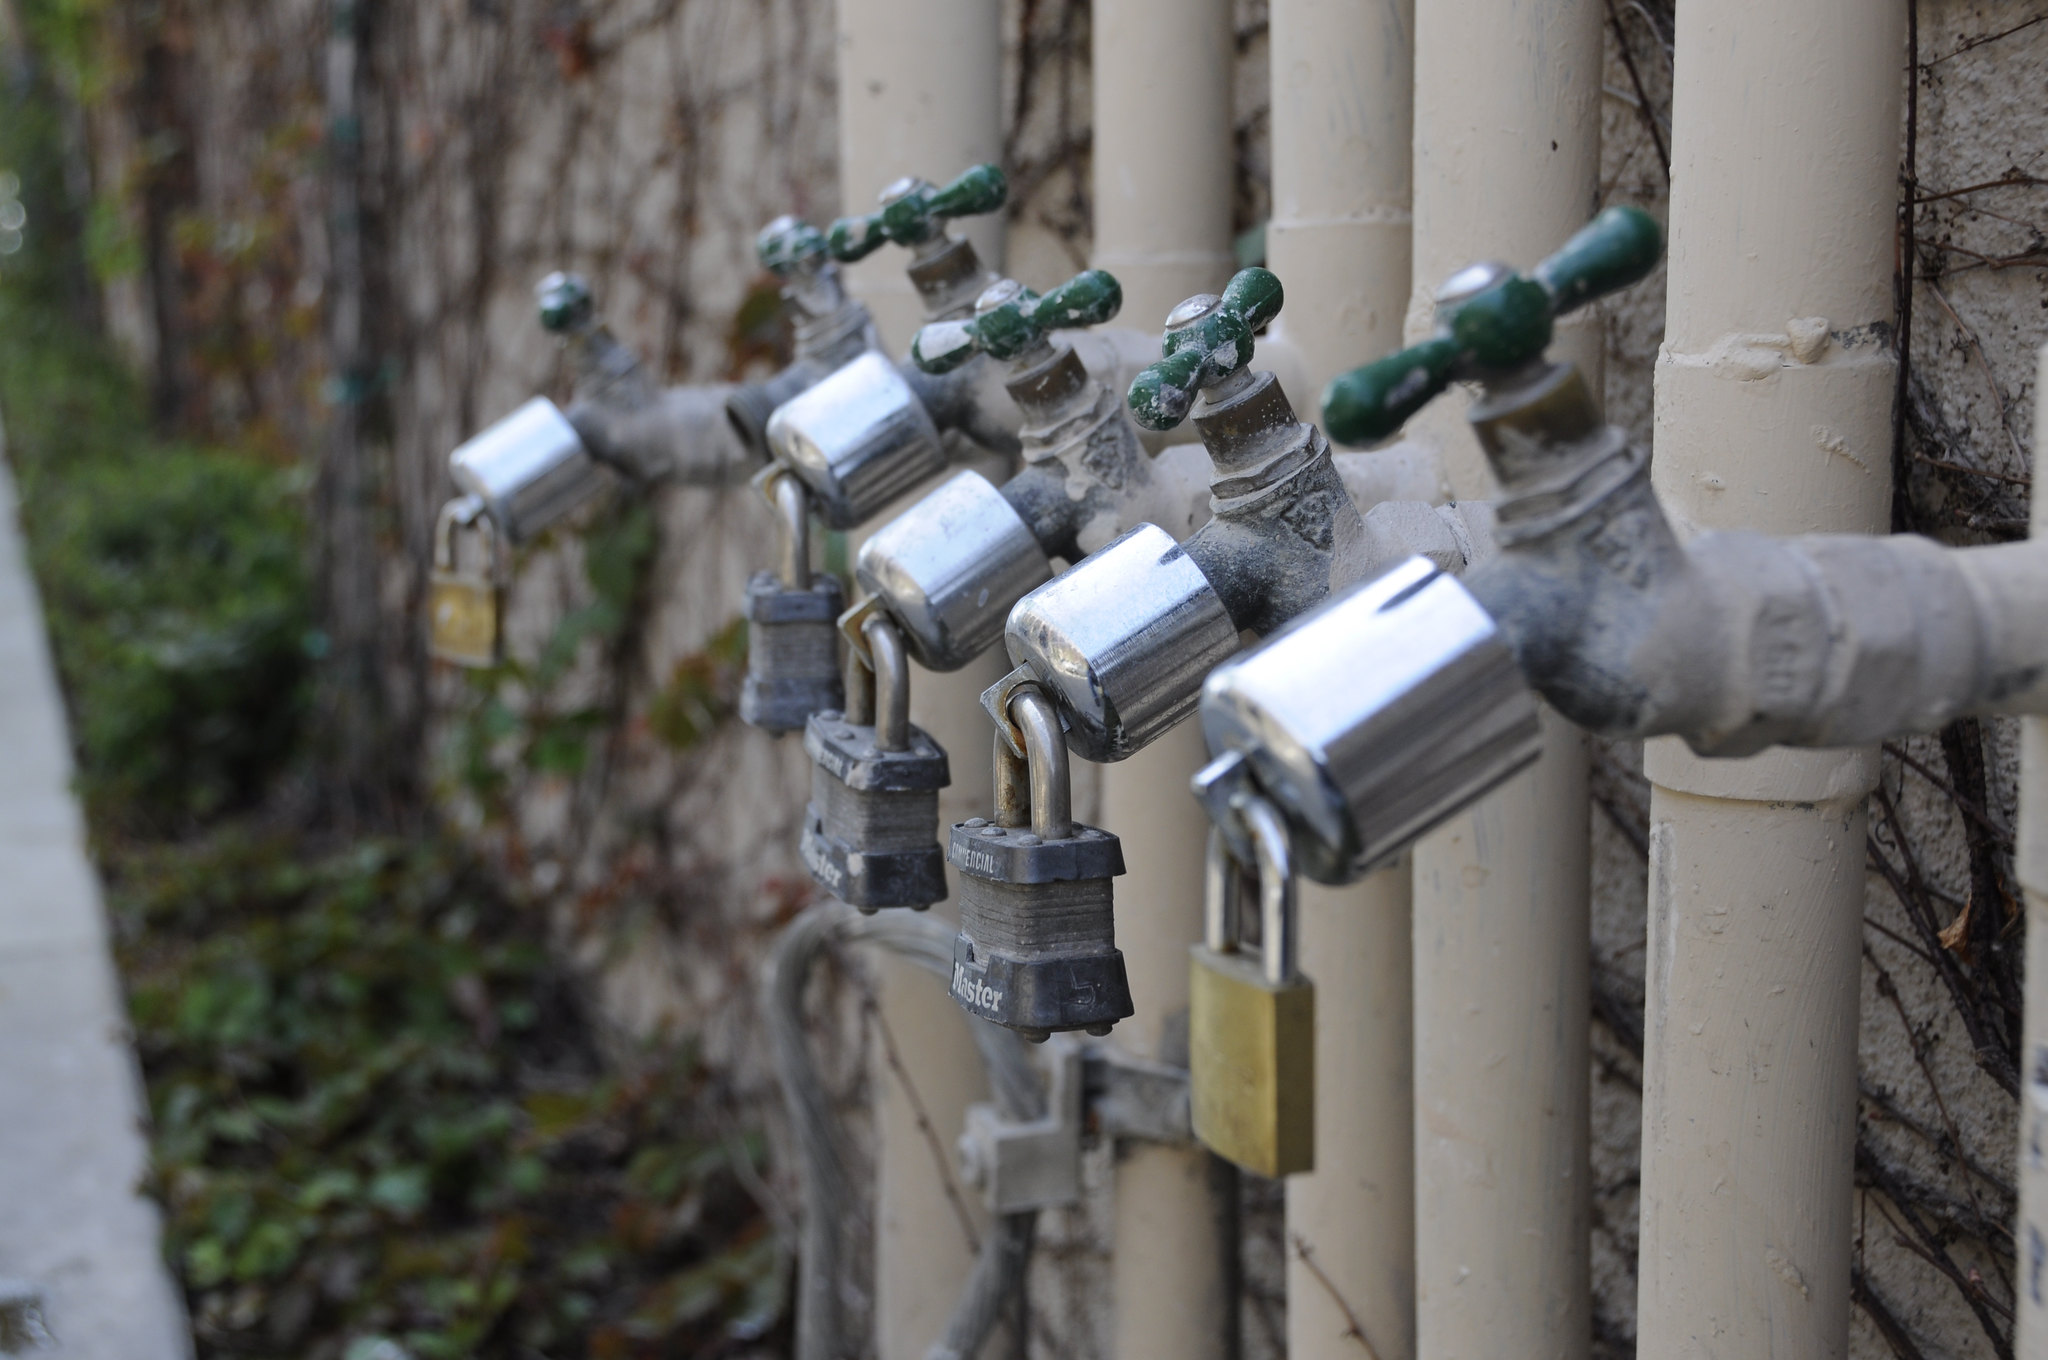 A row of water pipes with locks on theem_philanthropy needs to pay what it takes